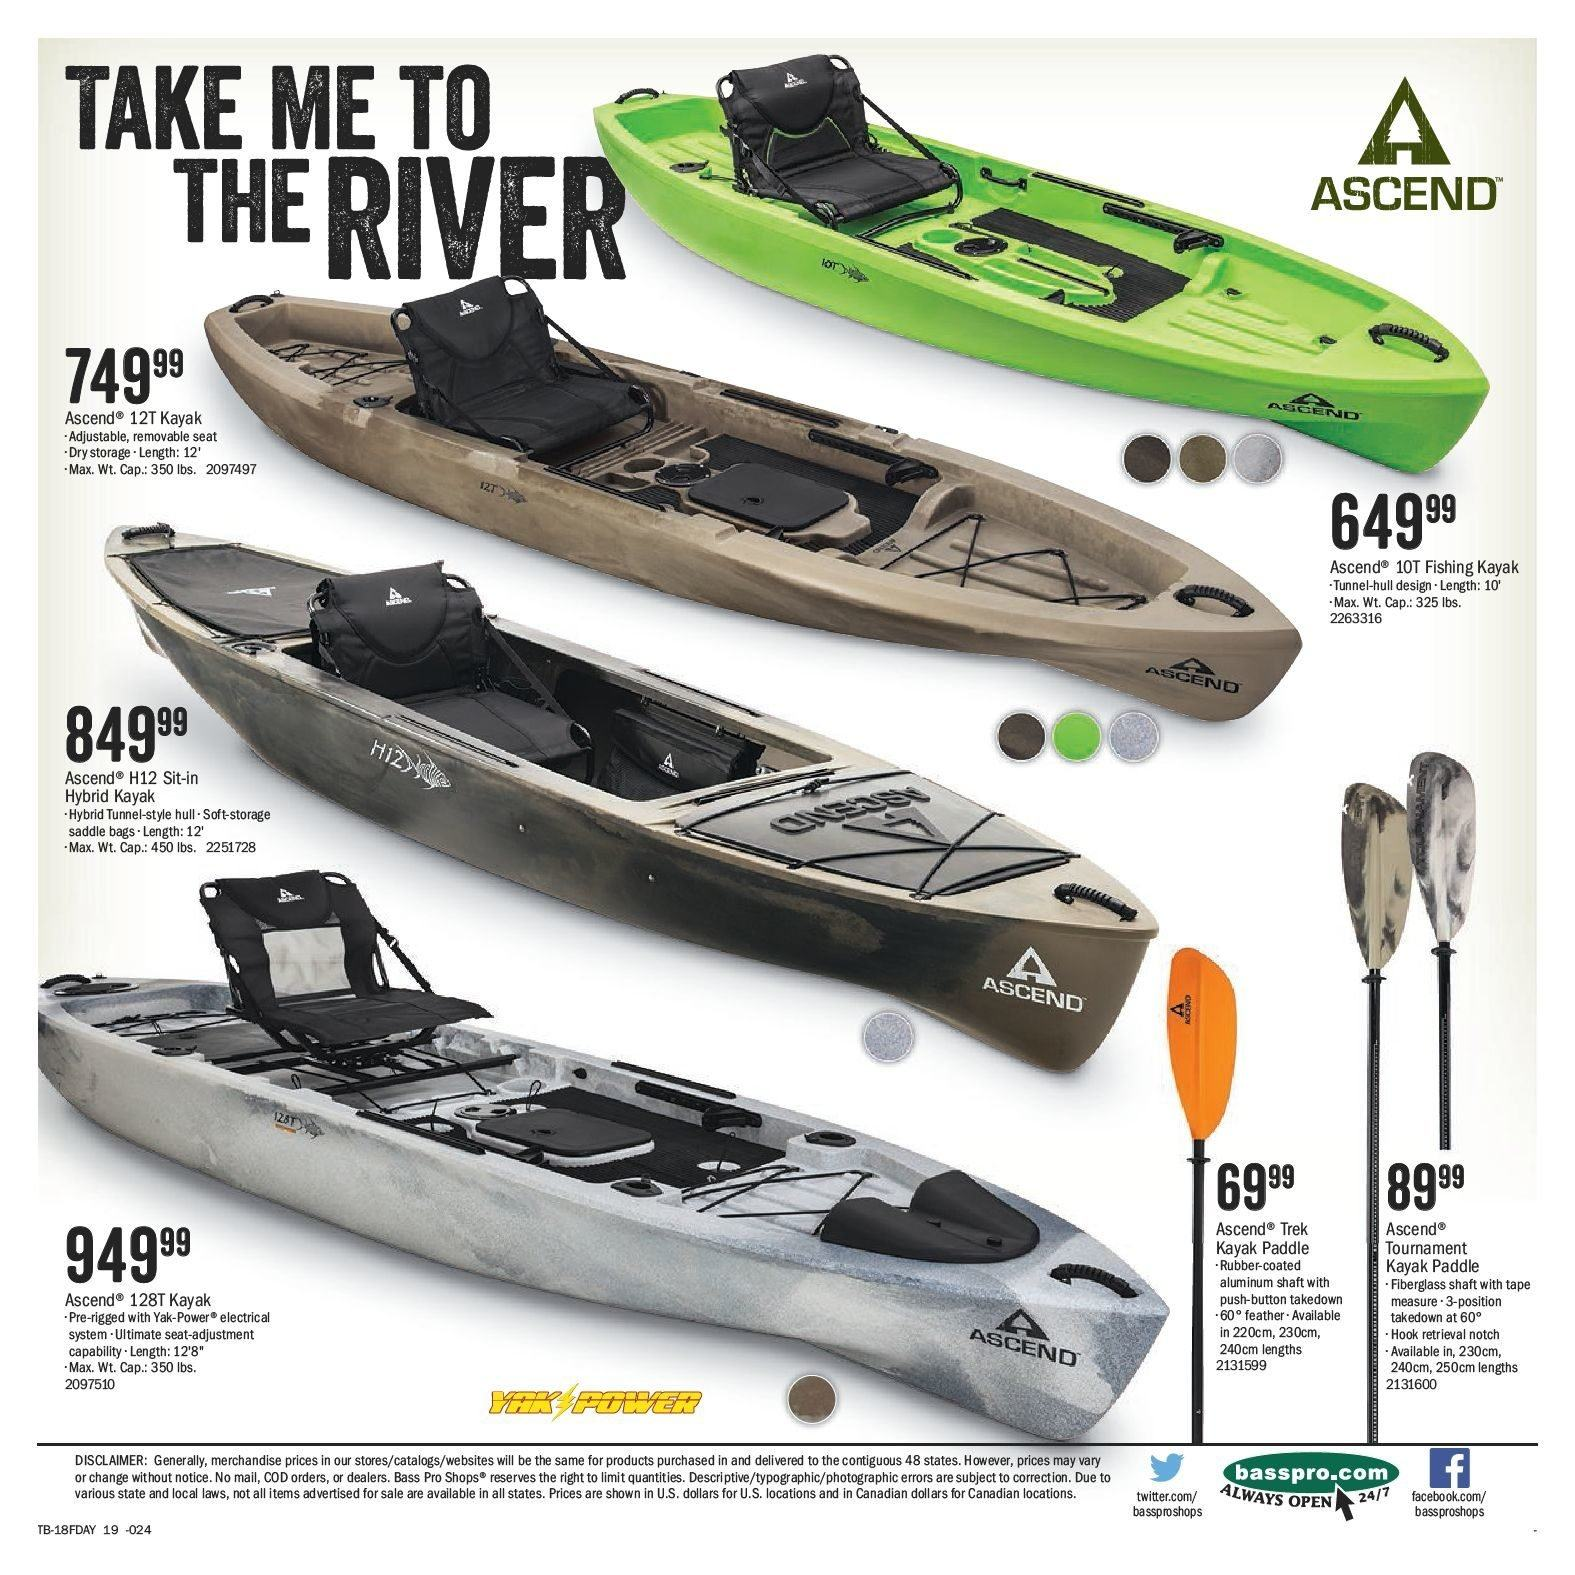 Bass Pro Shops Flyer  - May 29, 2018 - June 17, 2018. Page 19.